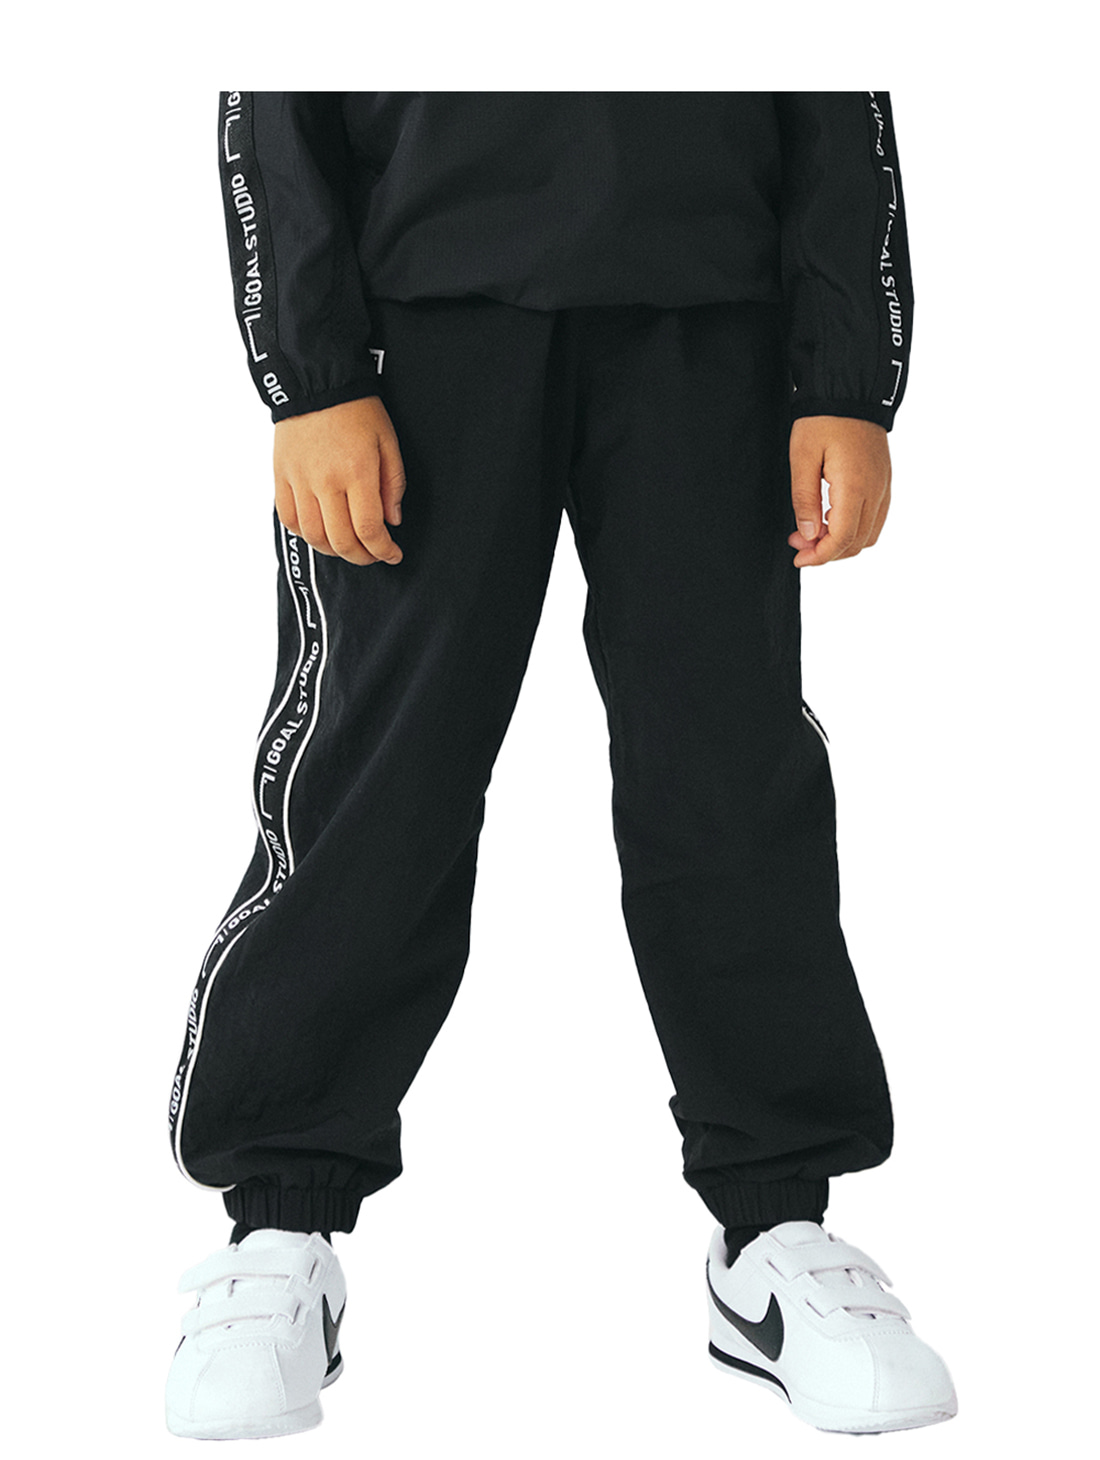 GOALSTUDIO (KIDS) SMALL LOGO TRACK PANTS - BLACK